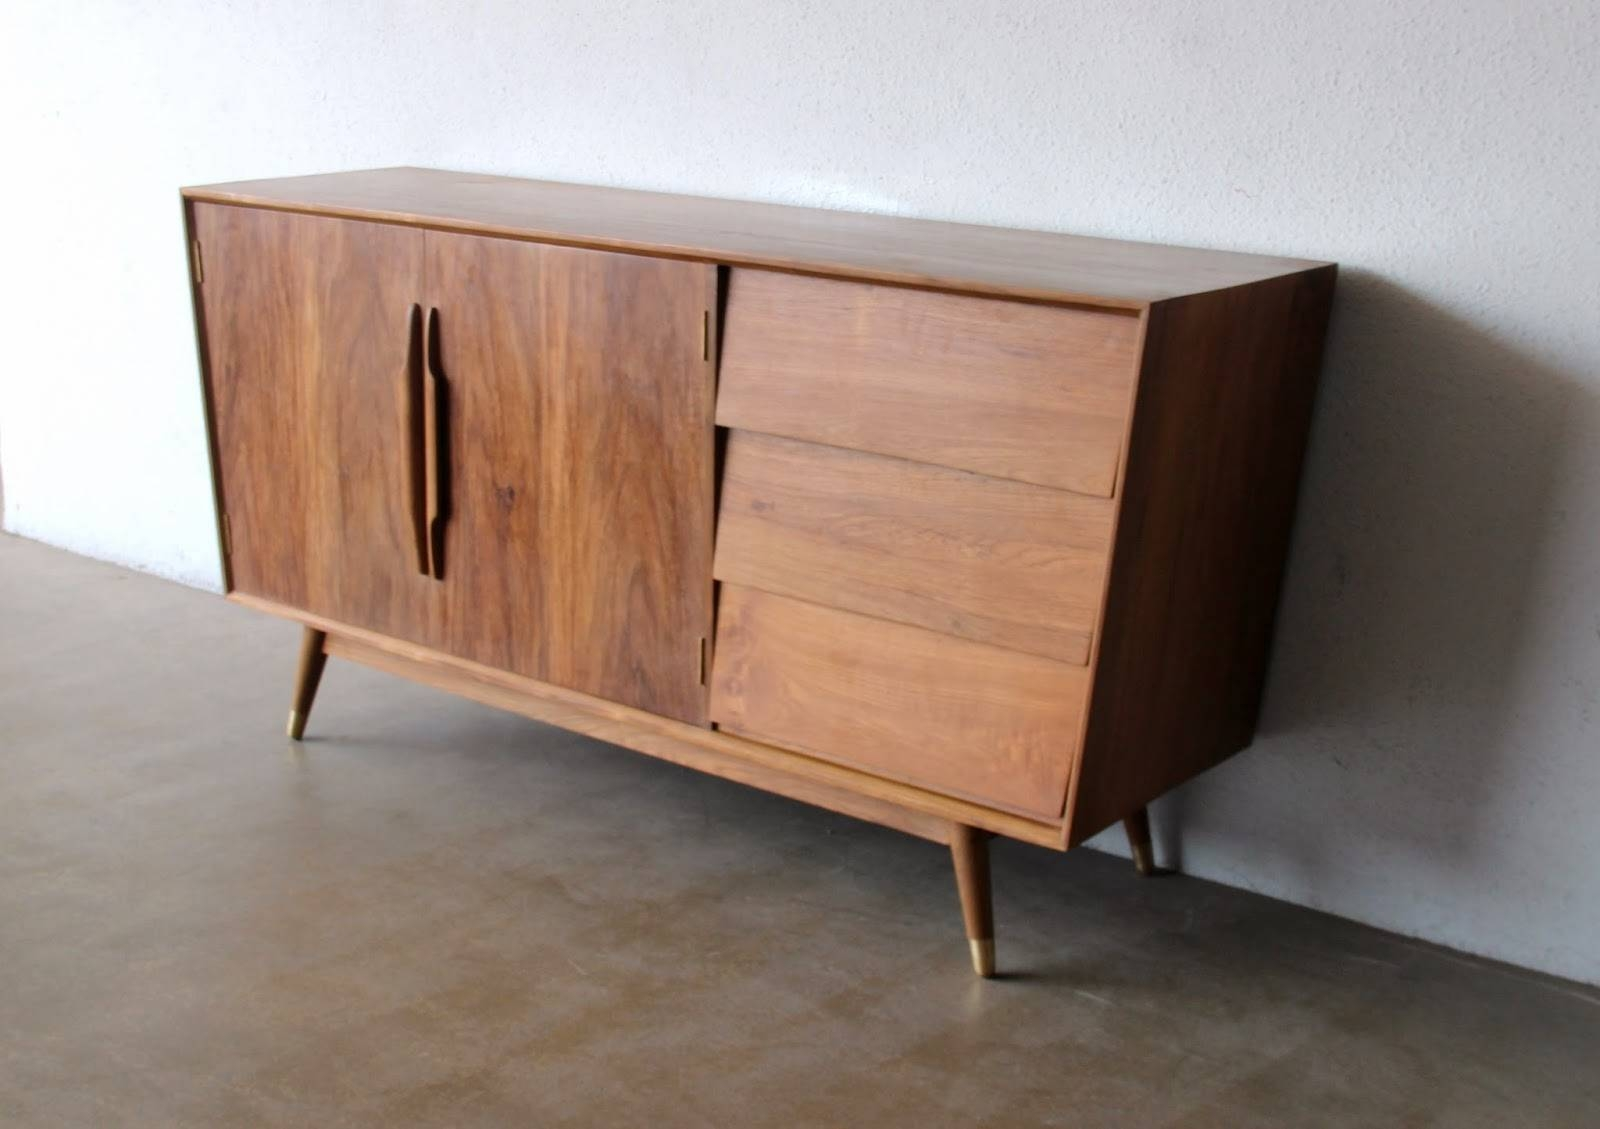 Second Charm Furniture – Mid Century Modern Influence | Second Charm With Regard To Mid Century Modern Sideboards (View 8 of 15)